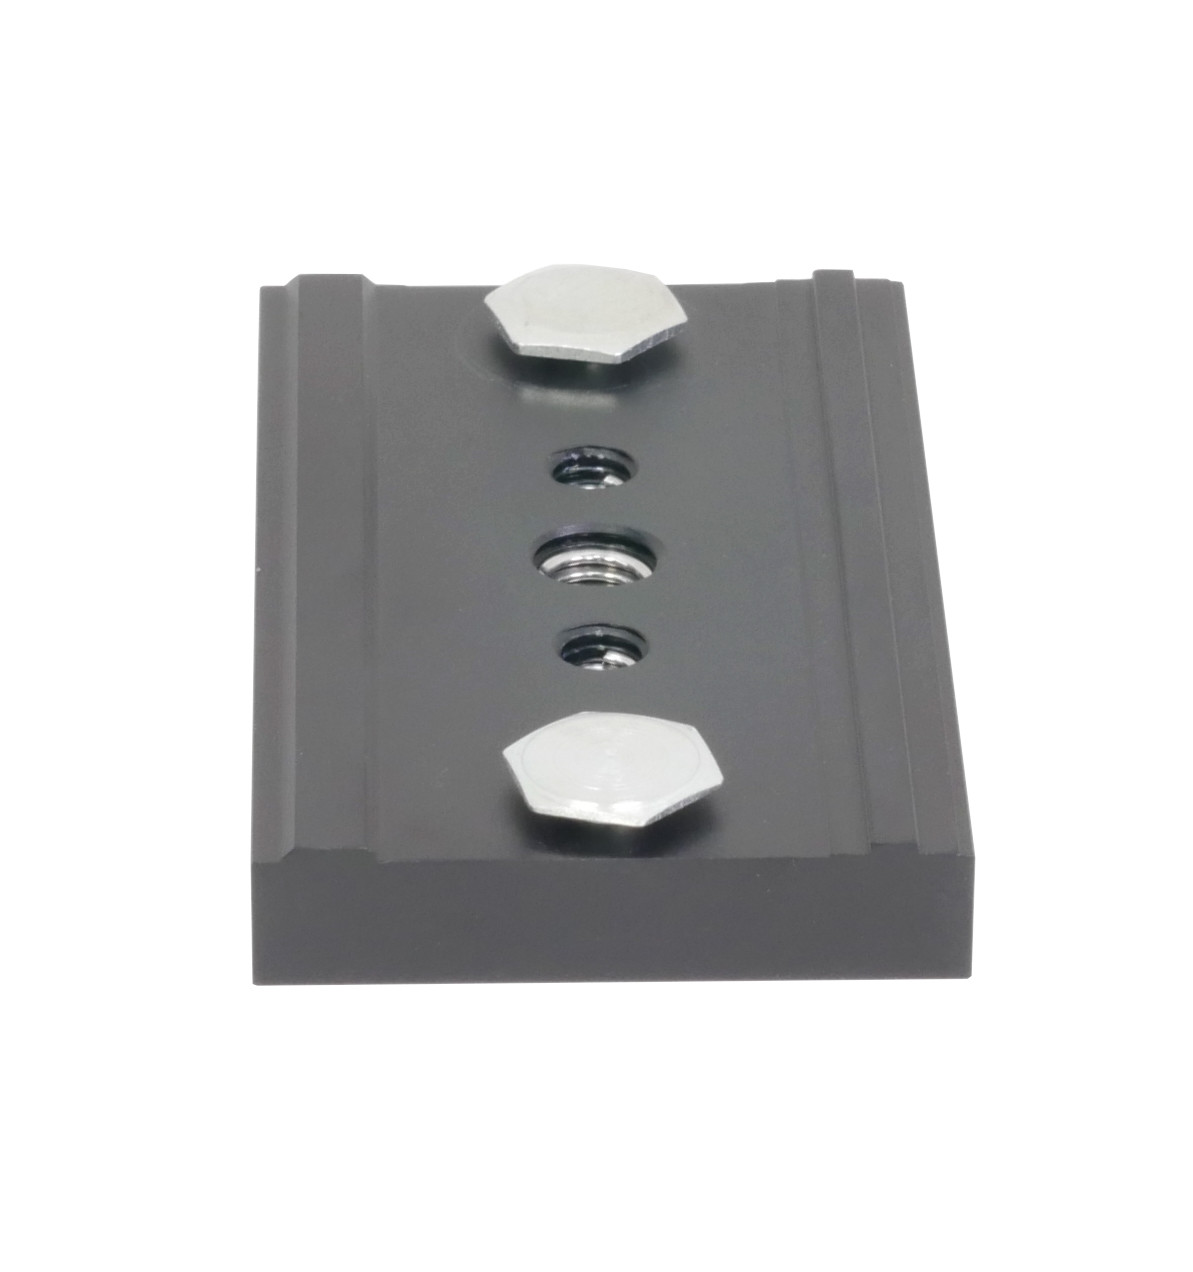 Mounting Adapter Plate Teleprompter - Top